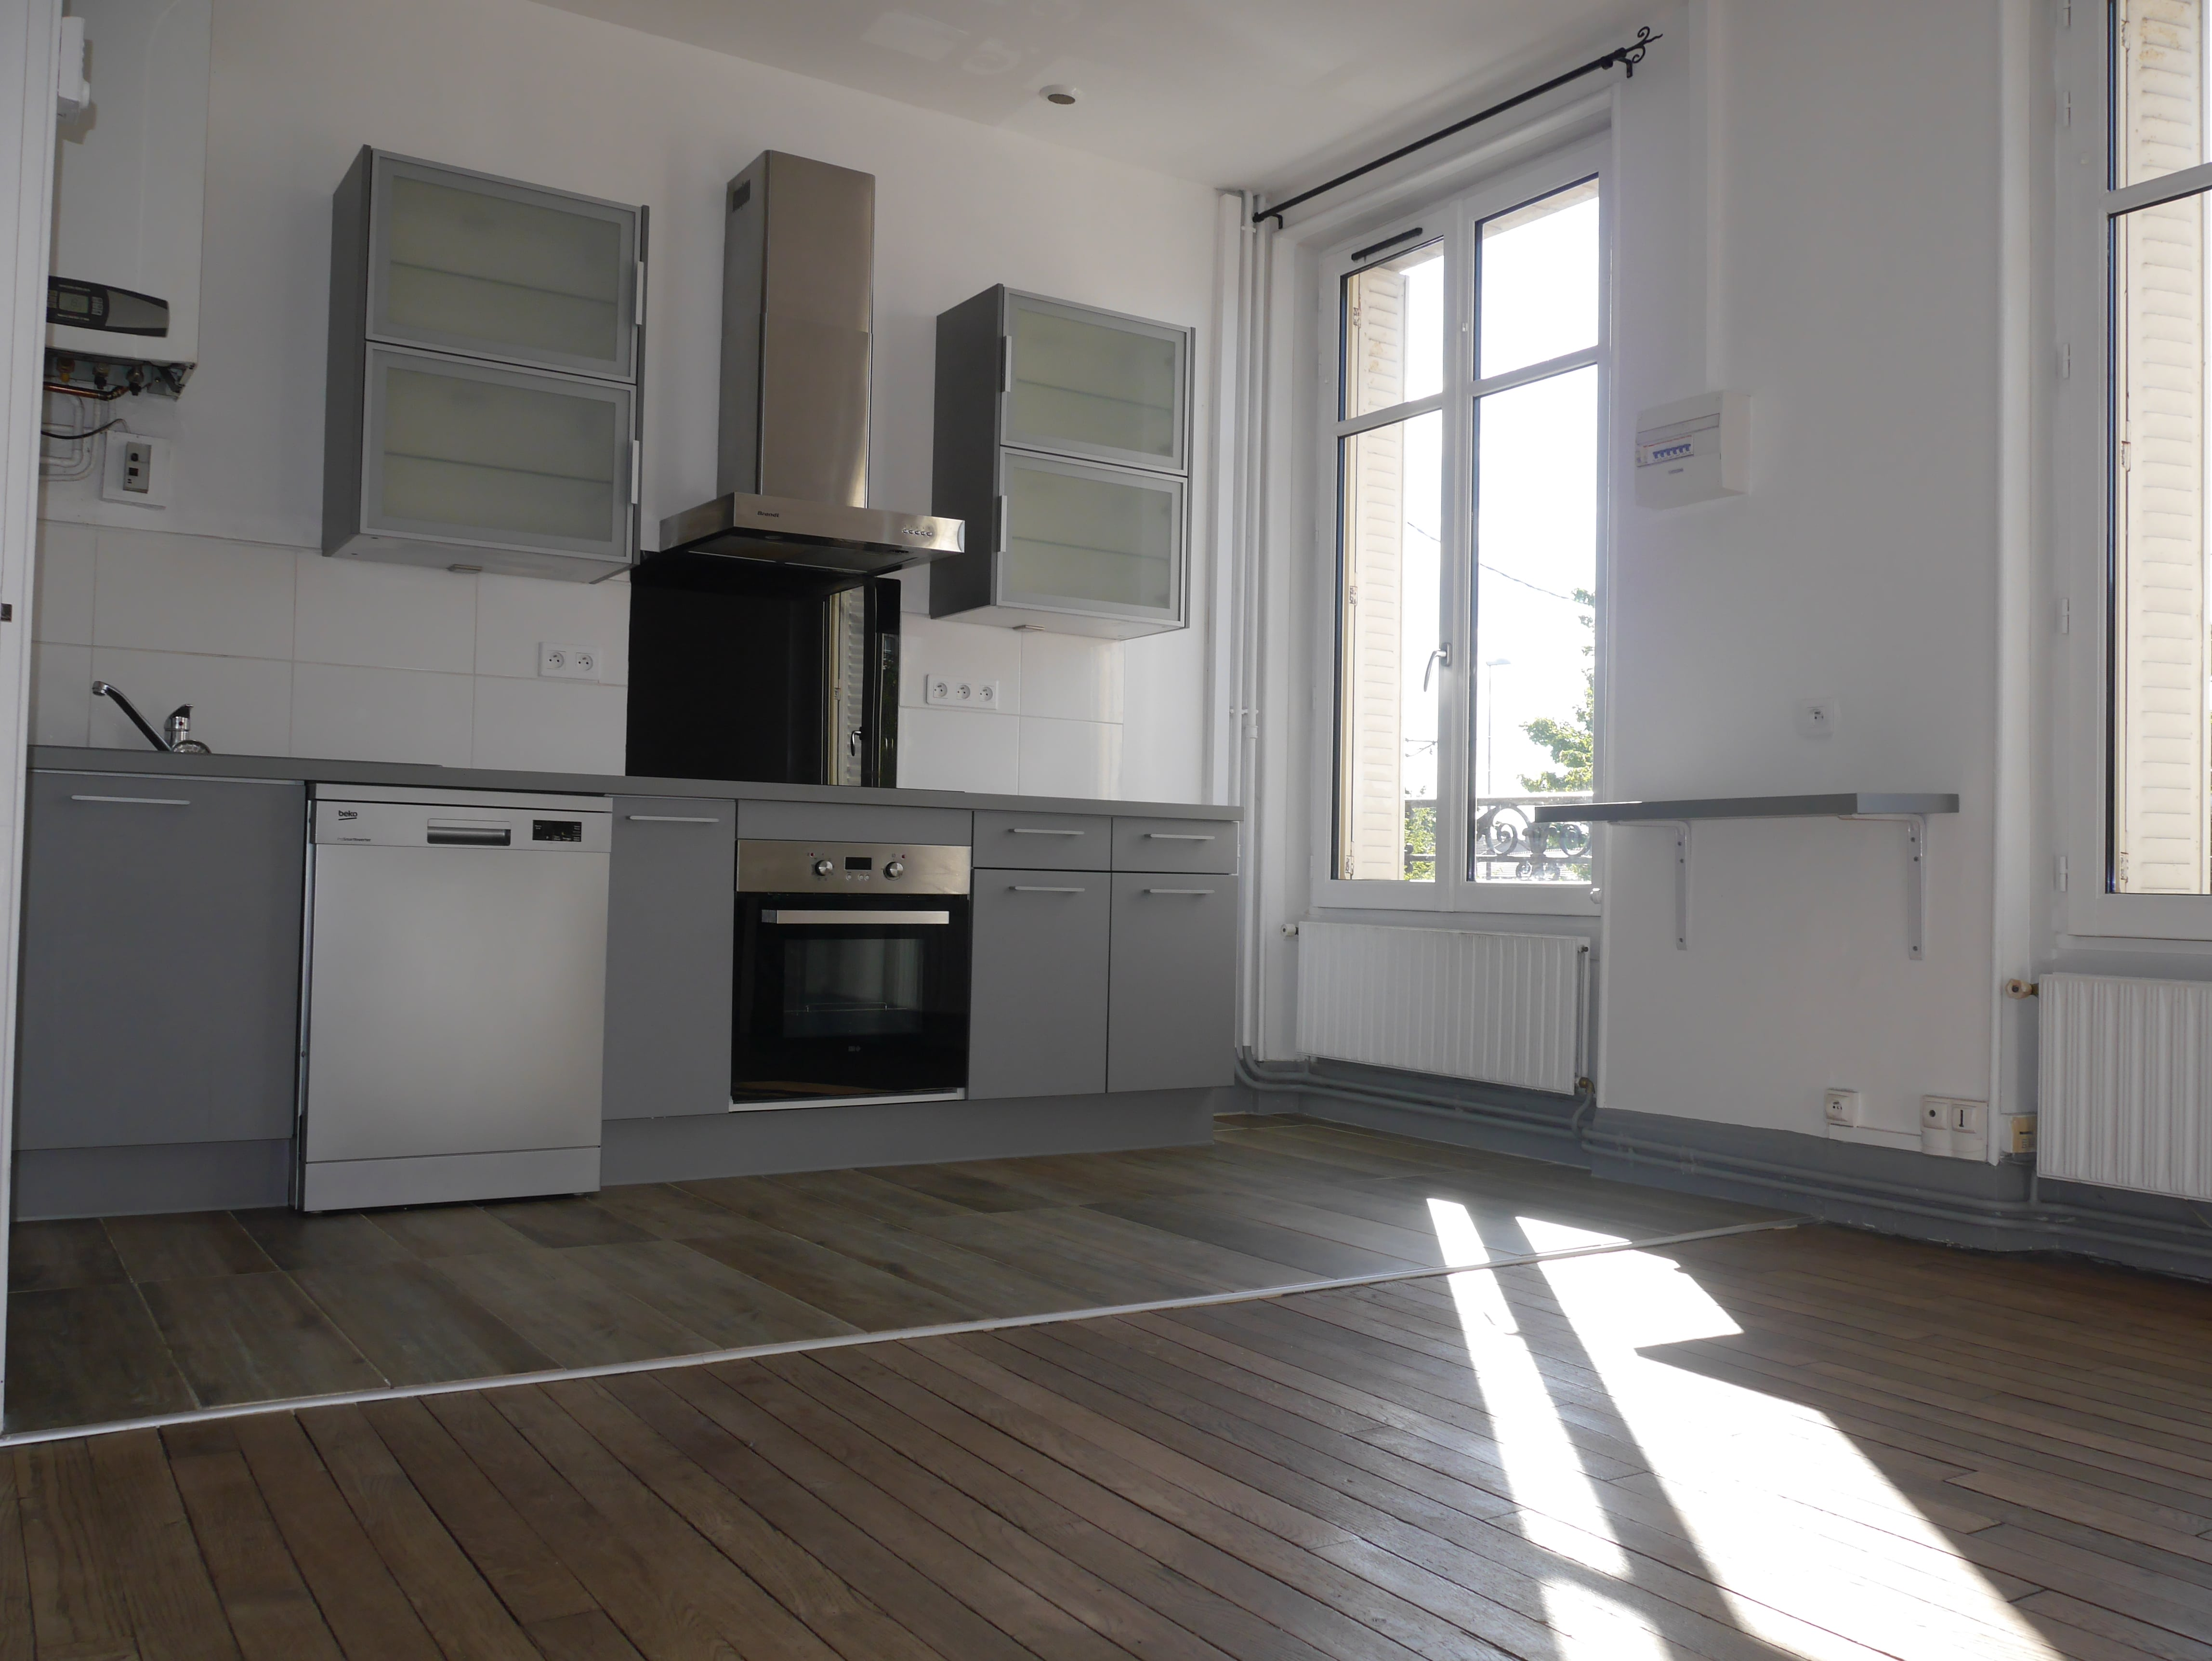 Damonte LOCATION APPARTEMENT T3 CHALONS EN CHAMPAGNE CL1596